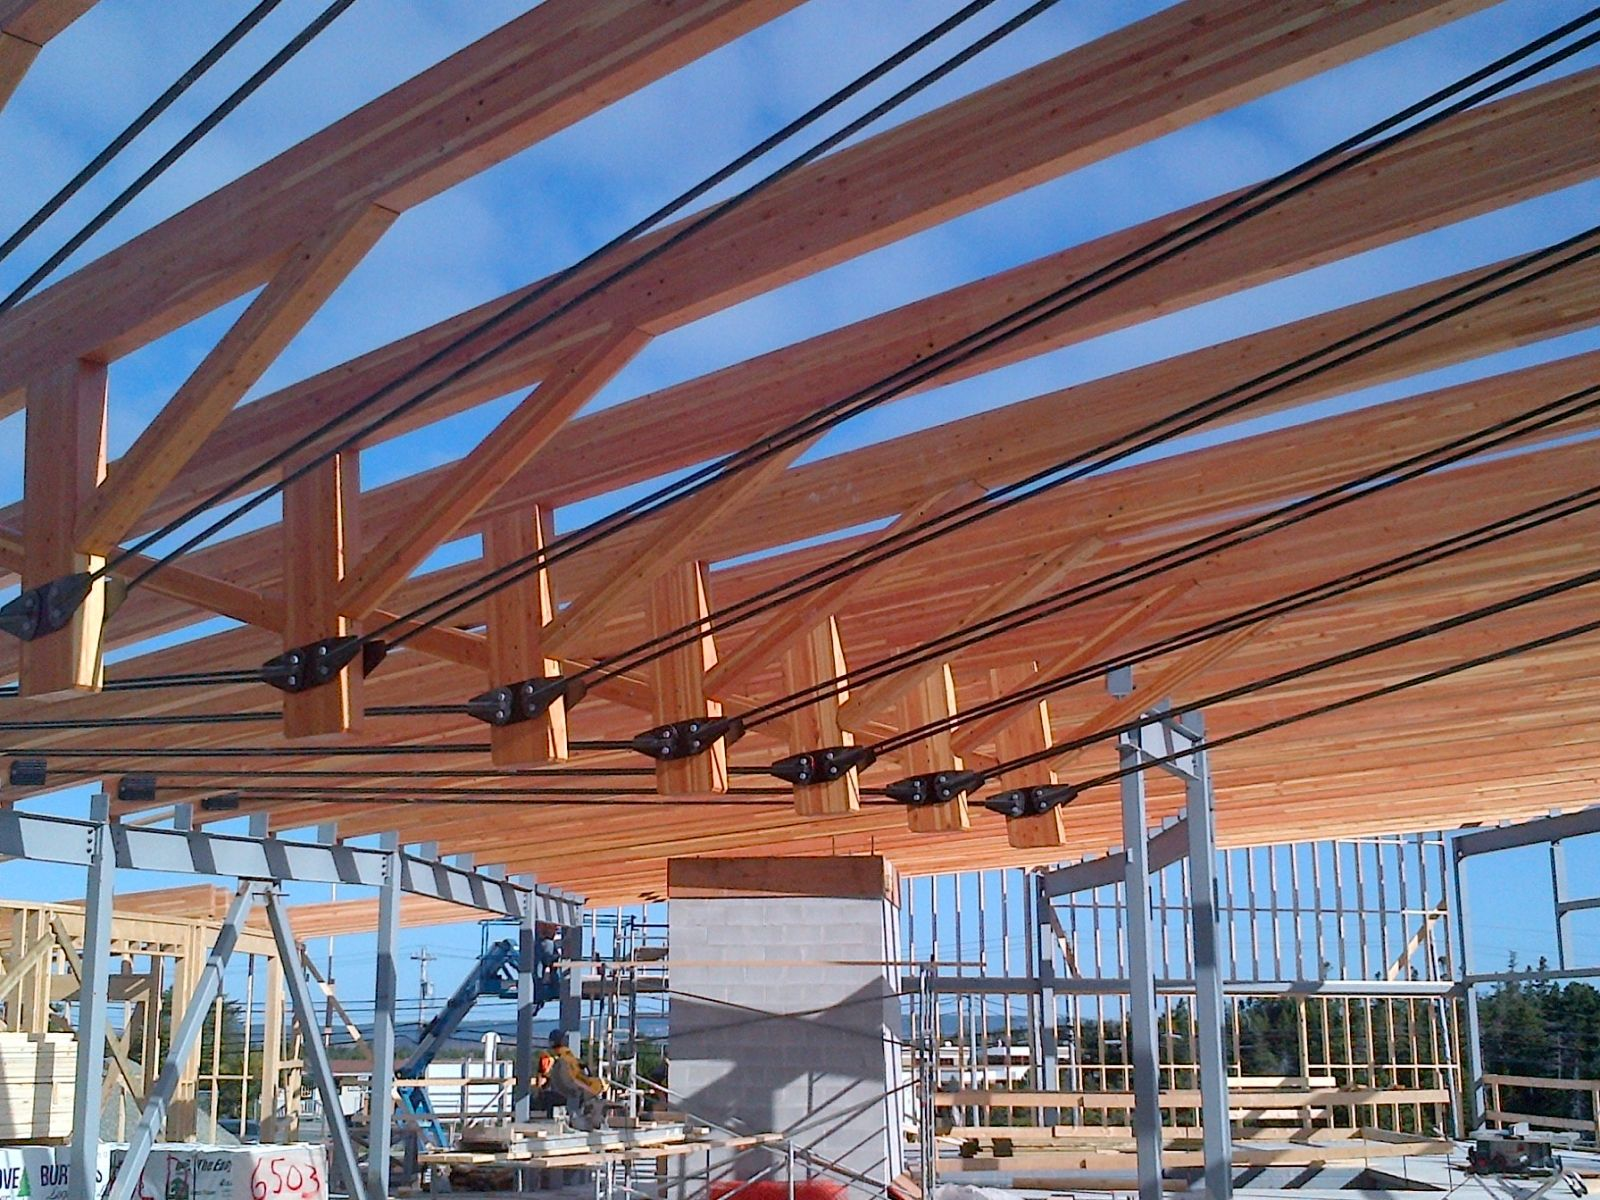 x pole steel above outreach trusses co roof center gauge barns and light for suncoast patrofi veloclub